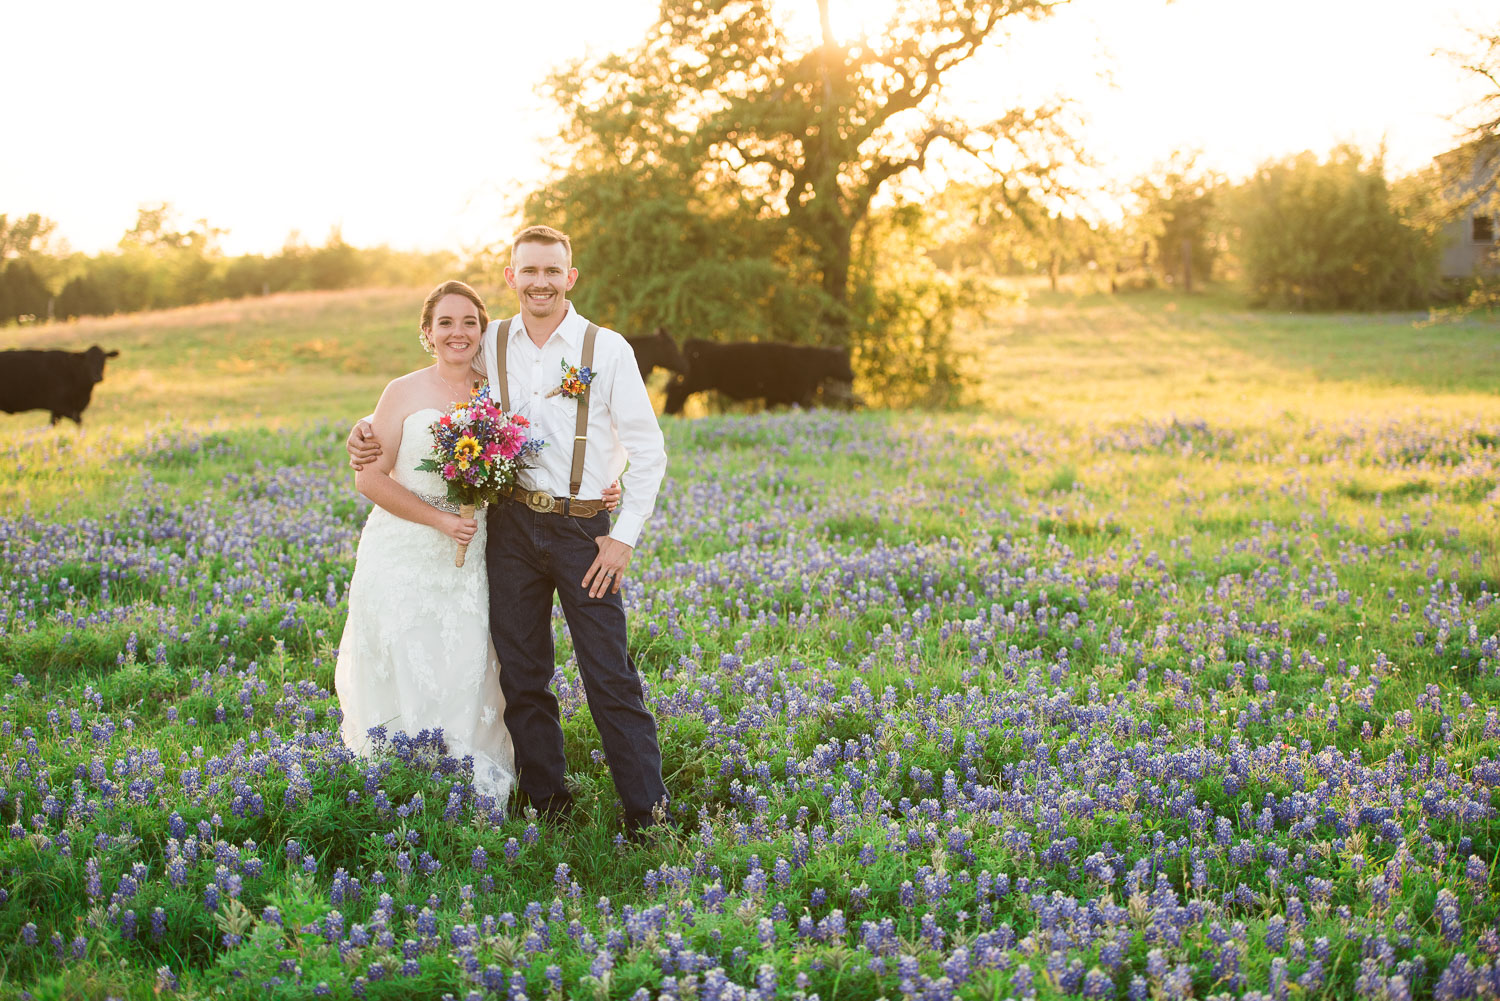 84 bridal photos in the bluebonnets during texas spring.jpg